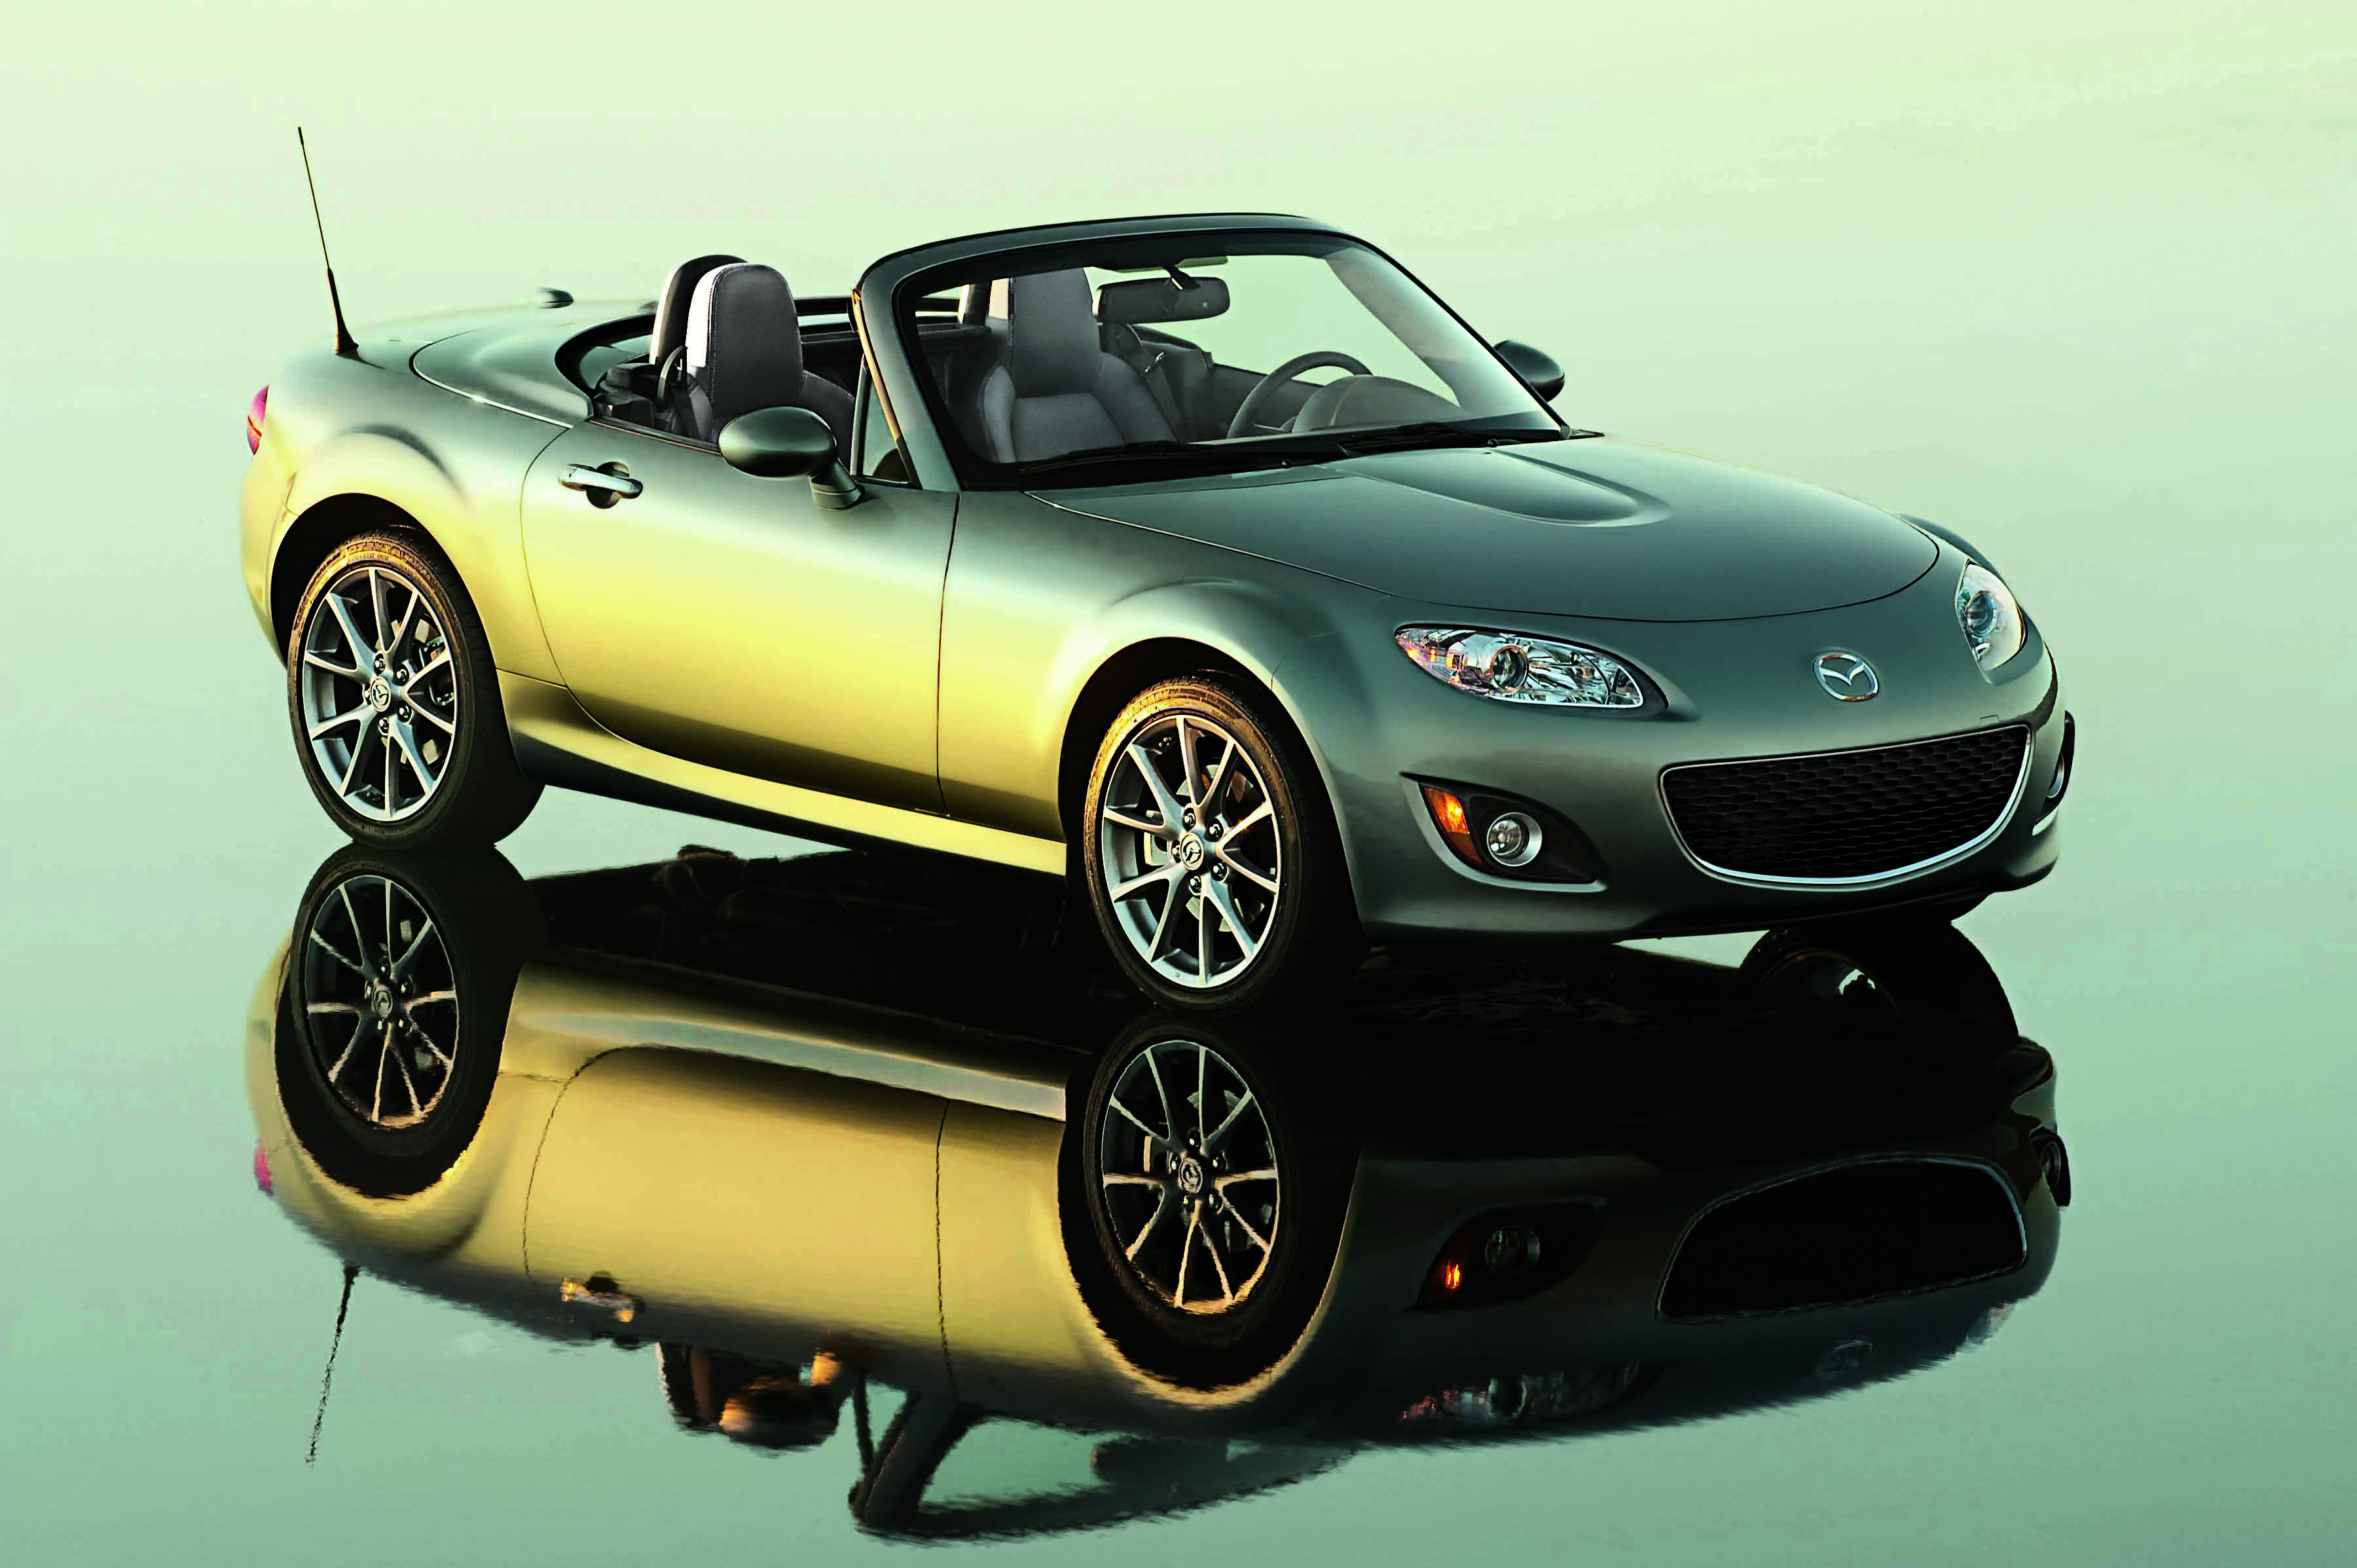 900 000 mazda mx 5 roadsters and counting japanese nostalgic car. Black Bedroom Furniture Sets. Home Design Ideas